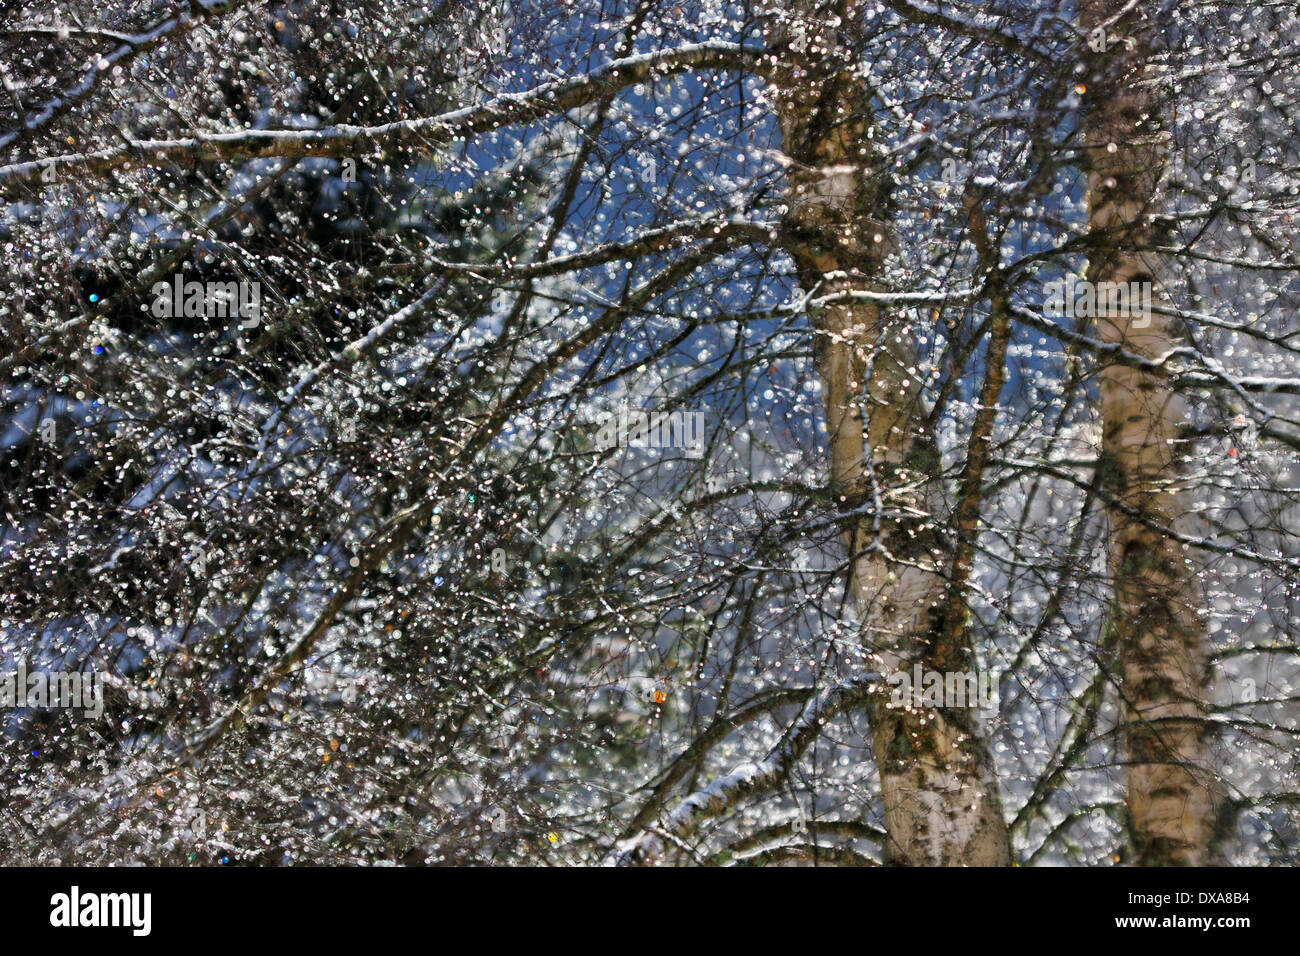 Braches and tree in winter. - Stock Image